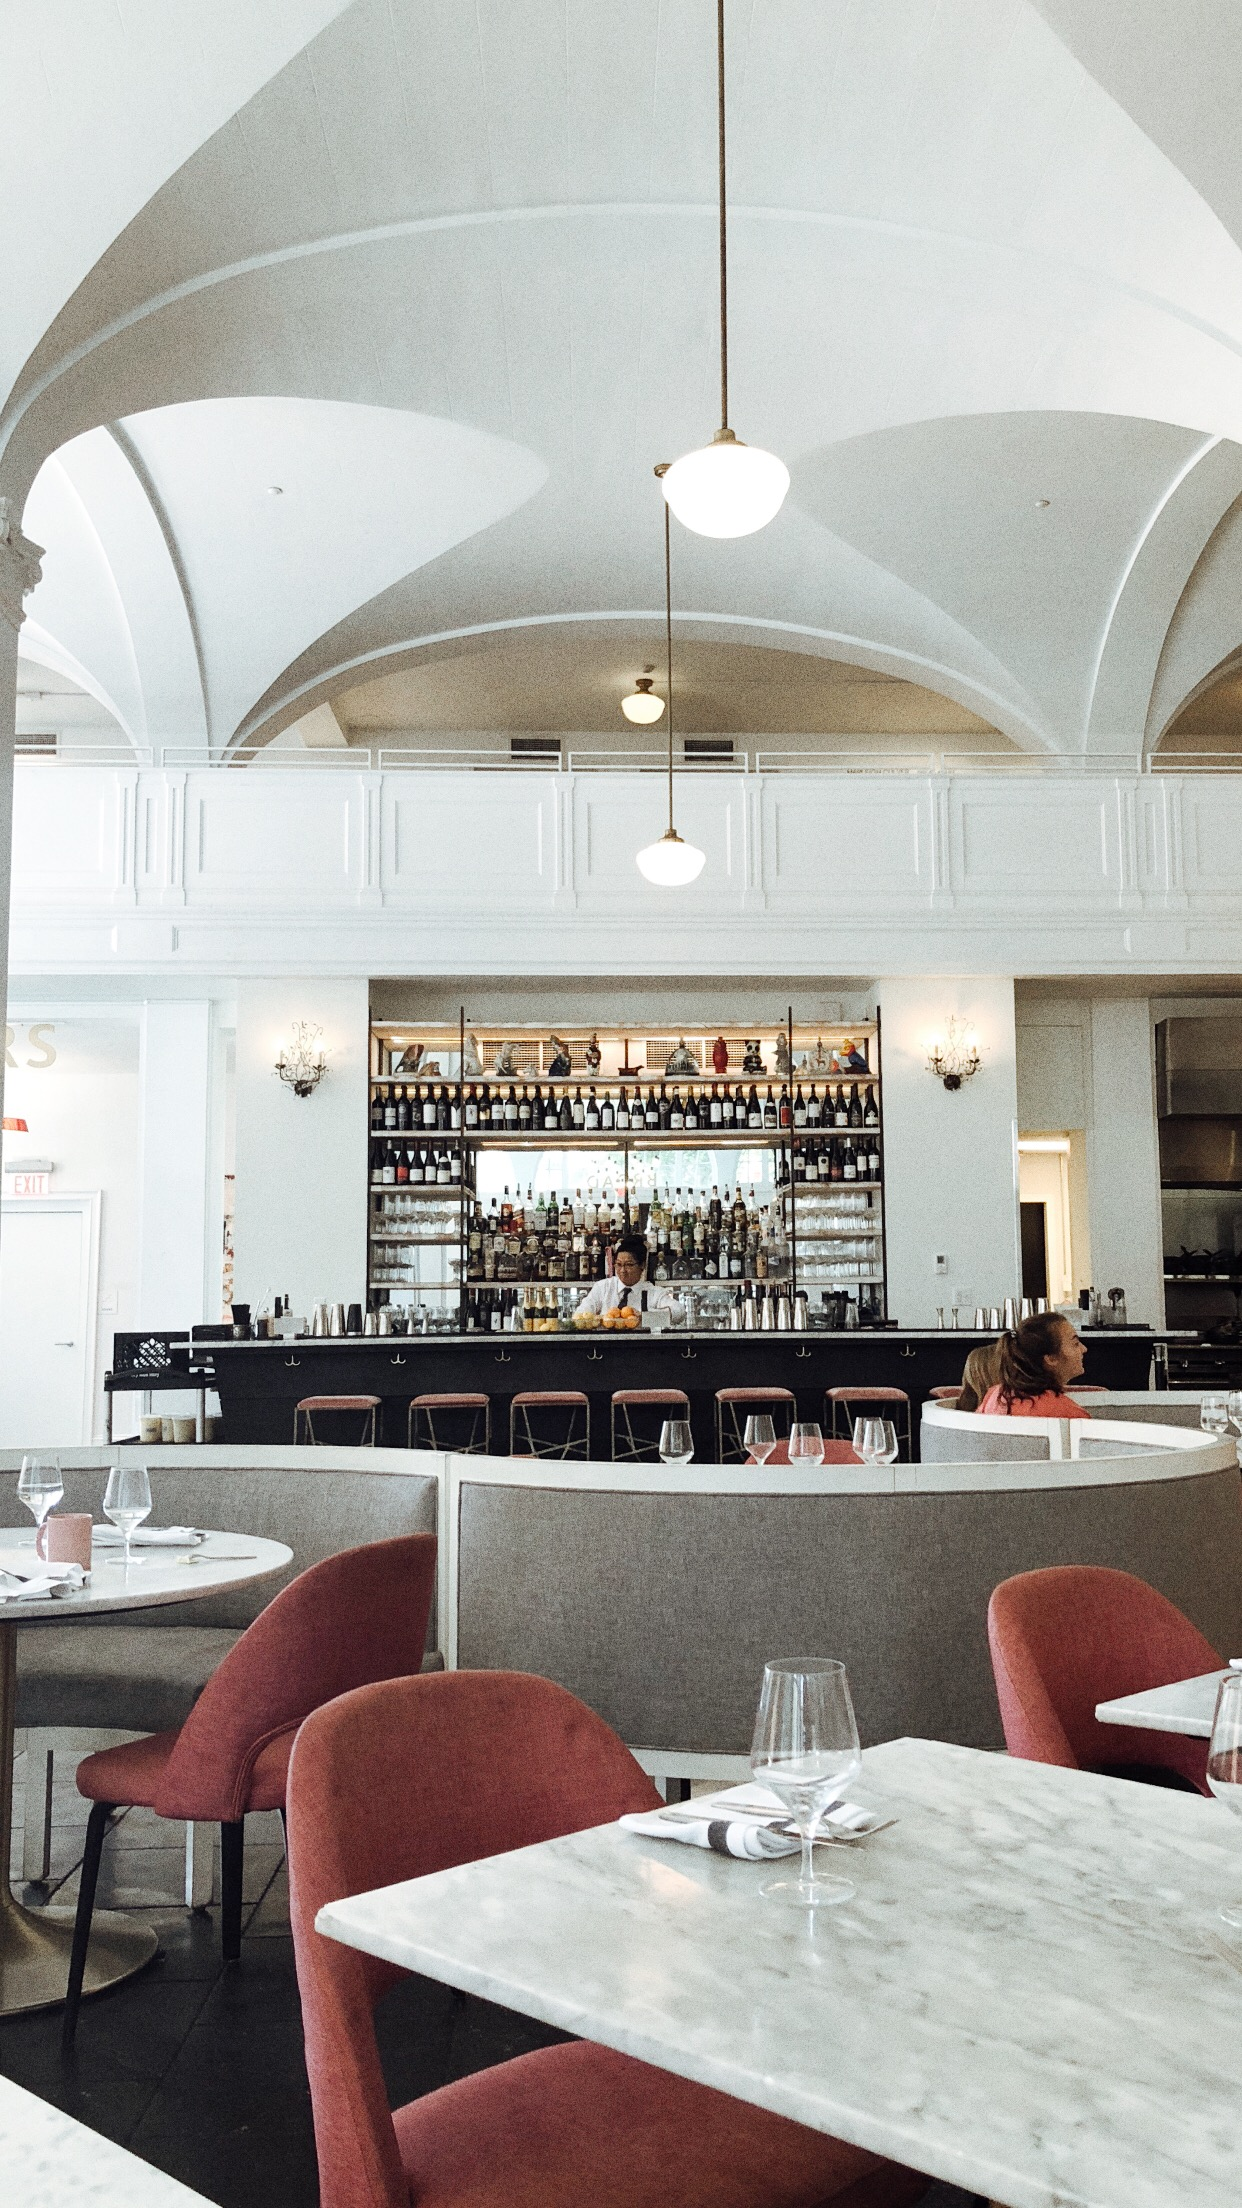 images above: Quirk Hotel